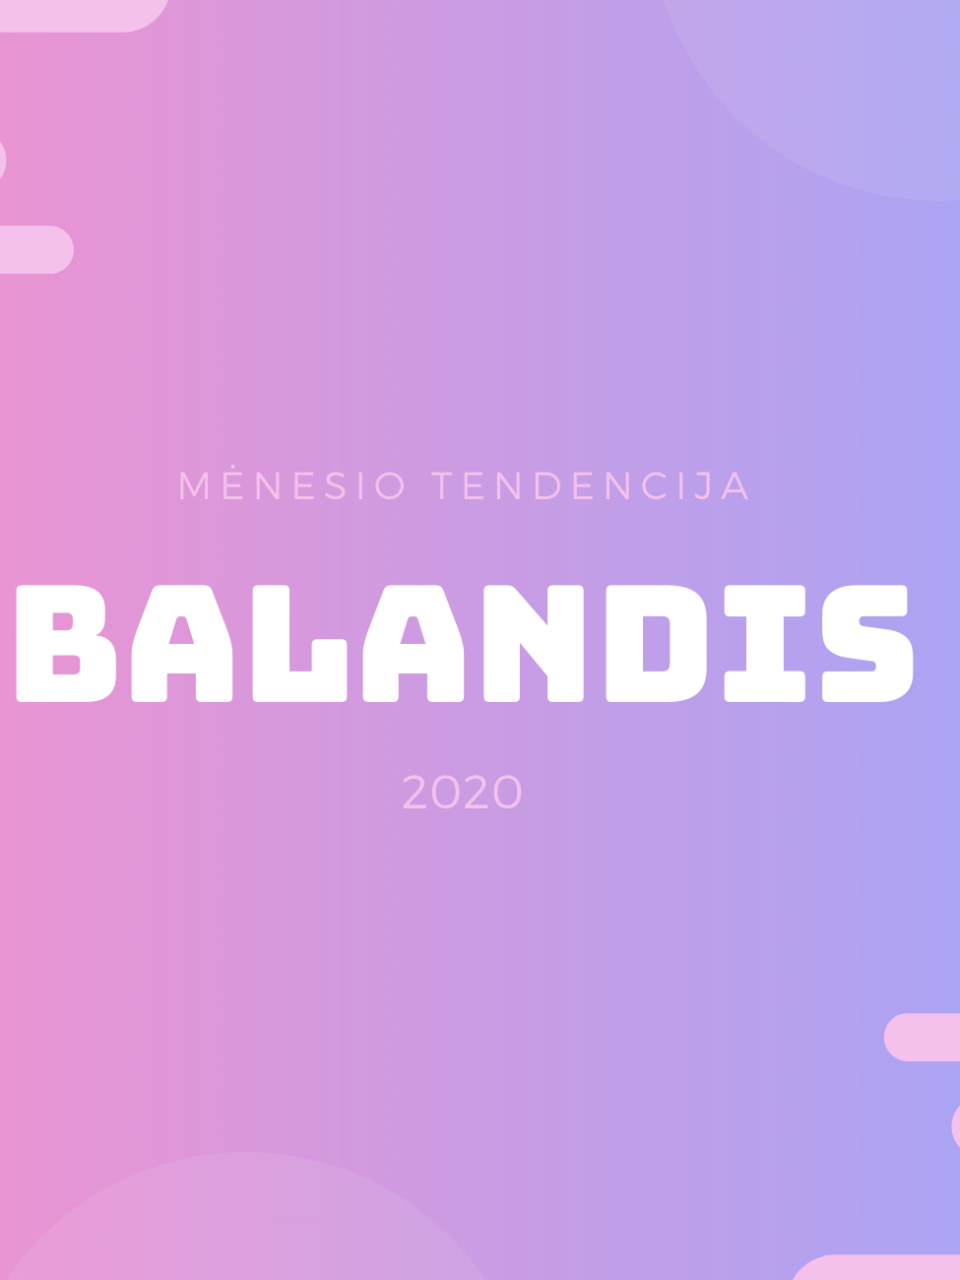 https://zachh.lt/wp-content/uploads/2020/04/balandzio-men-horo-2020-960x1280.png